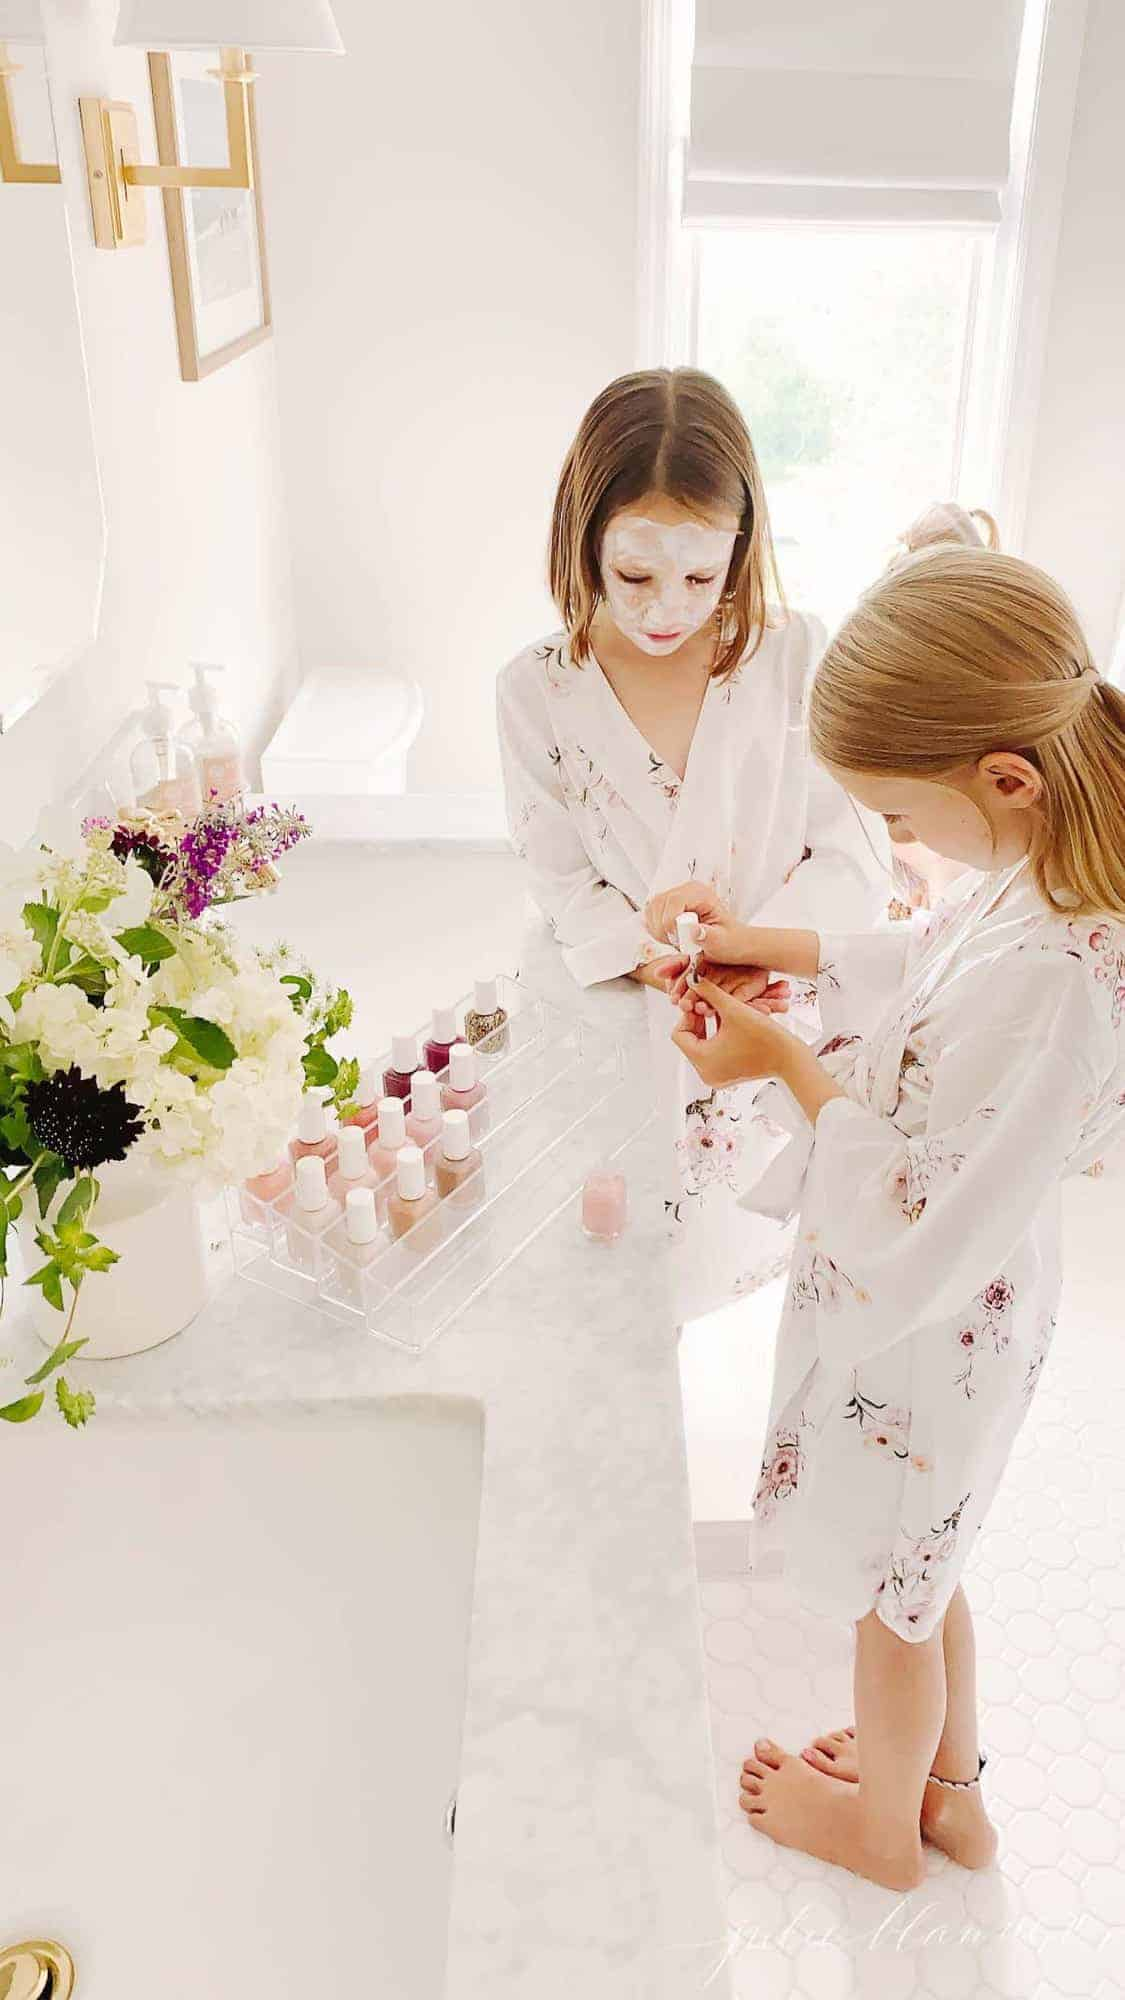 Two little girls in face masks in a white bathroom, painting nails.